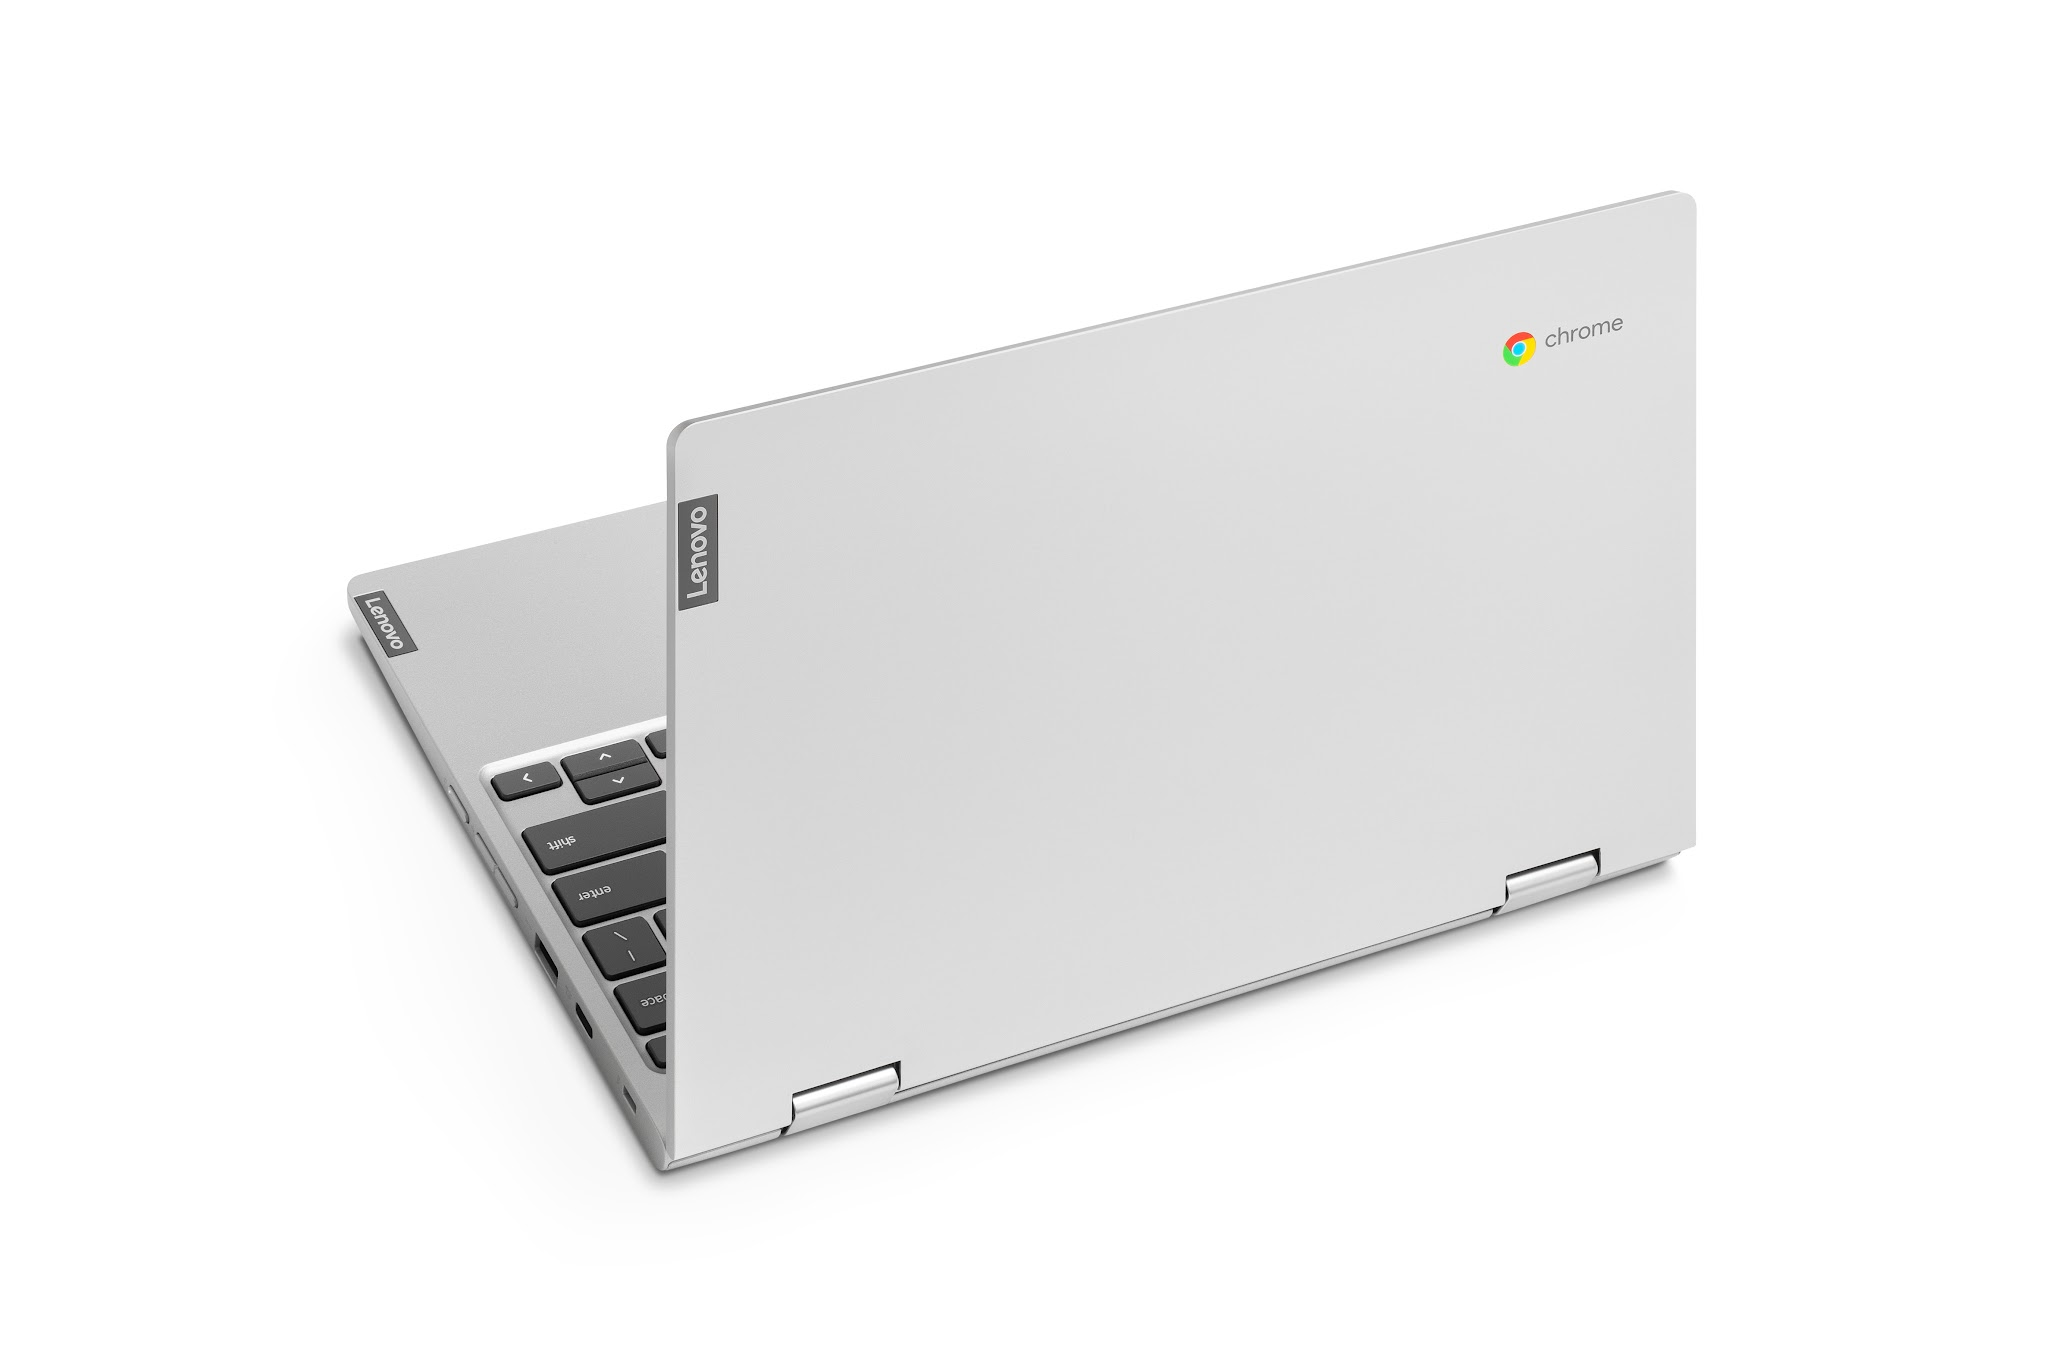 Lenovo Chromebook C340-11 - photo 13